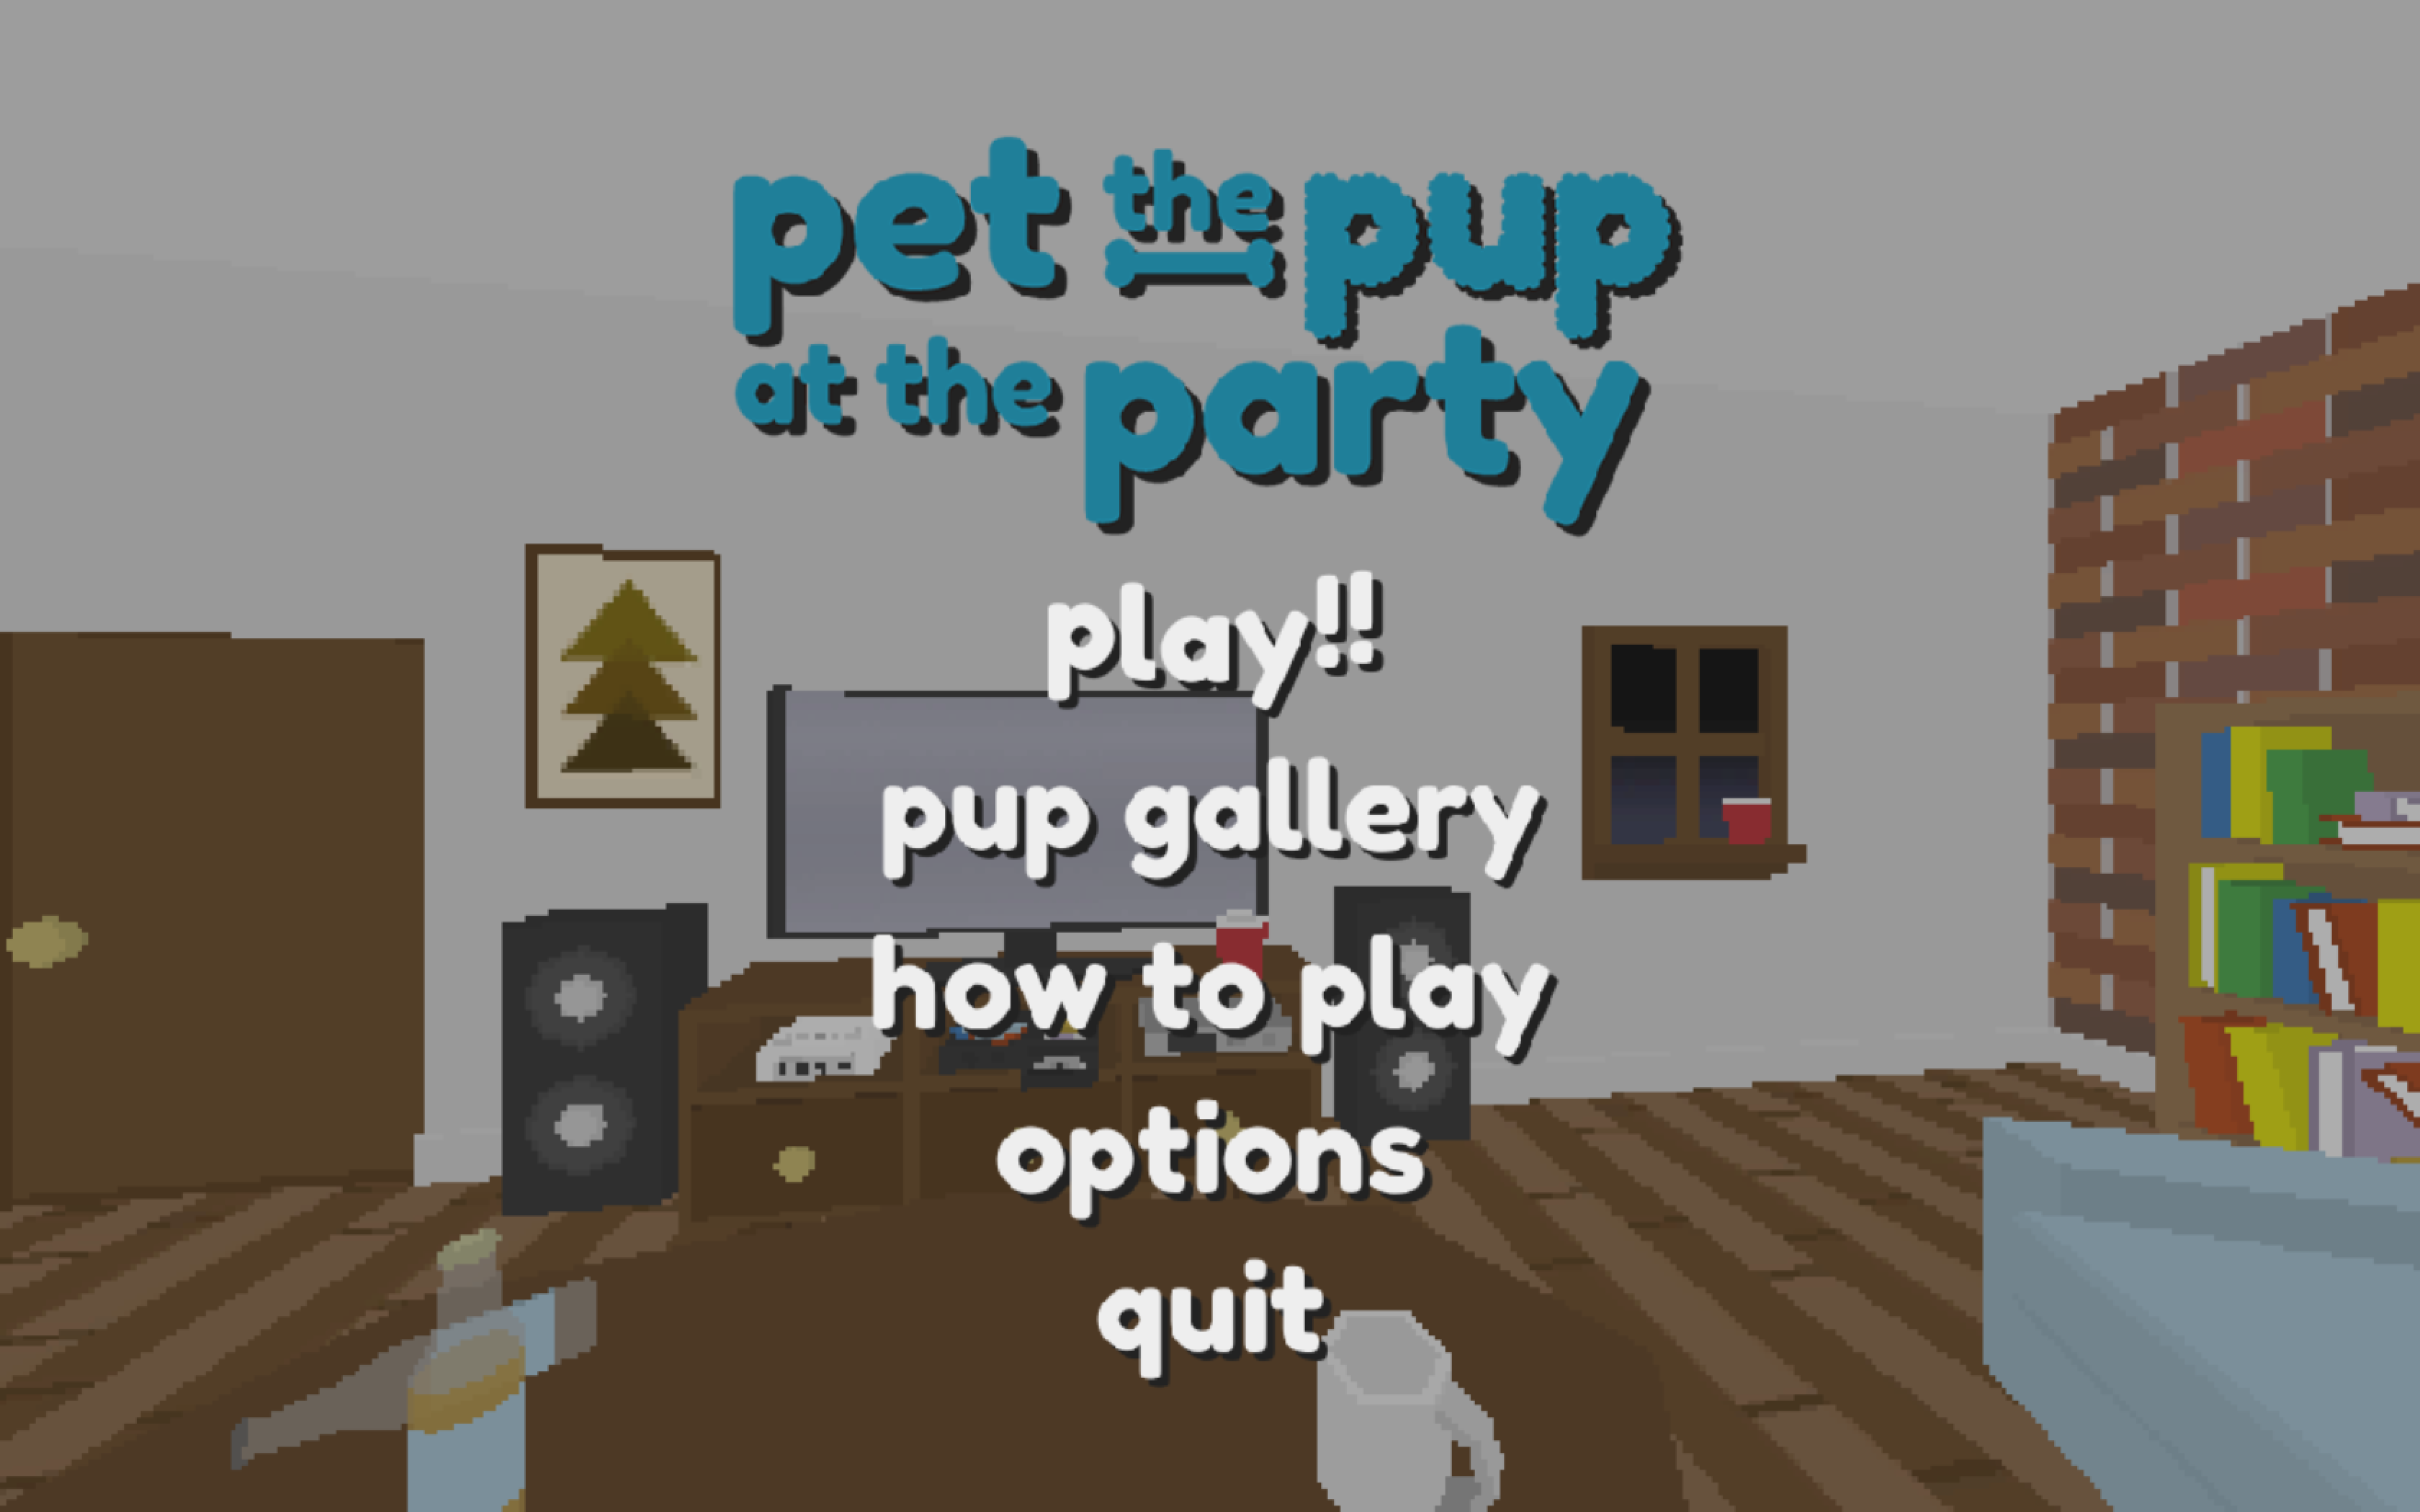 Pet the pup at the party by will herring viewing most recent comments 1 to 40 of 85 next page last page solutioingenieria Gallery